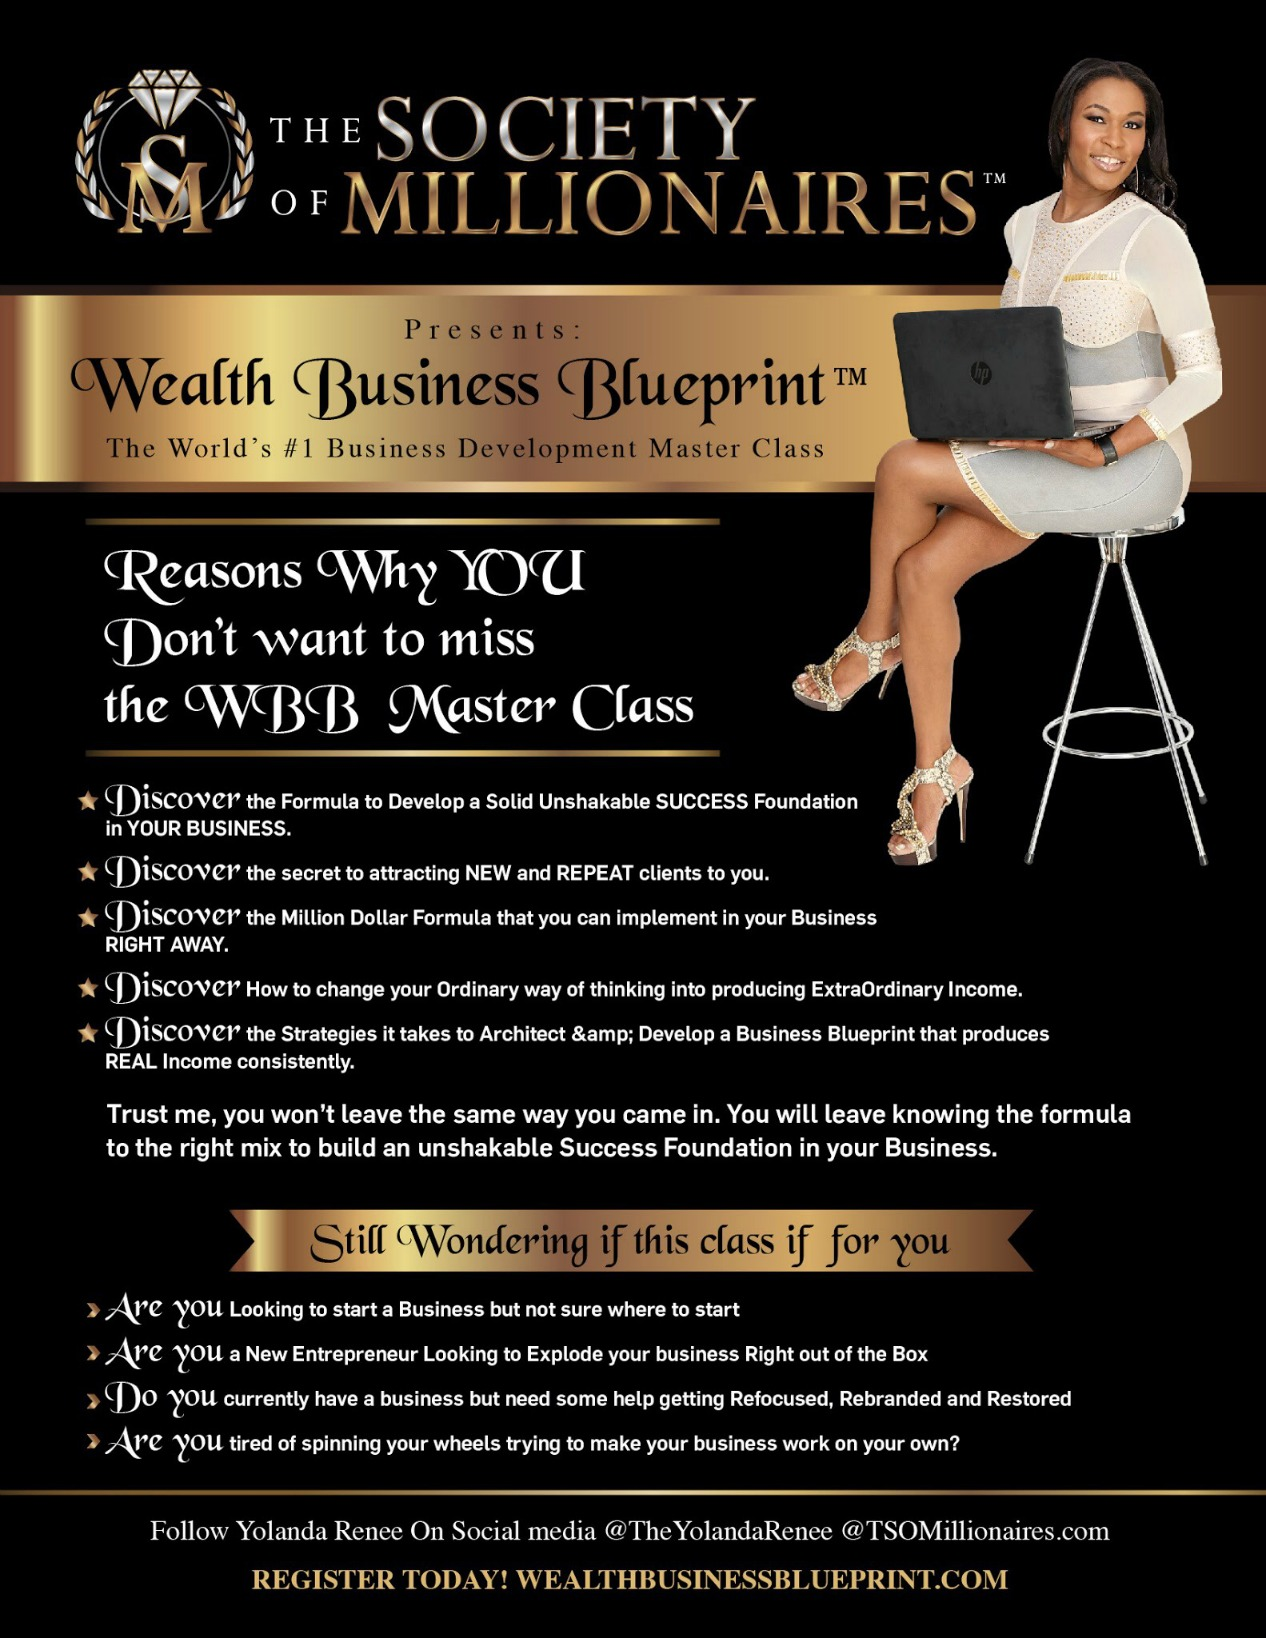 WEALTH BUSINESS BLUEPRINT LIVE MASTER CLASS